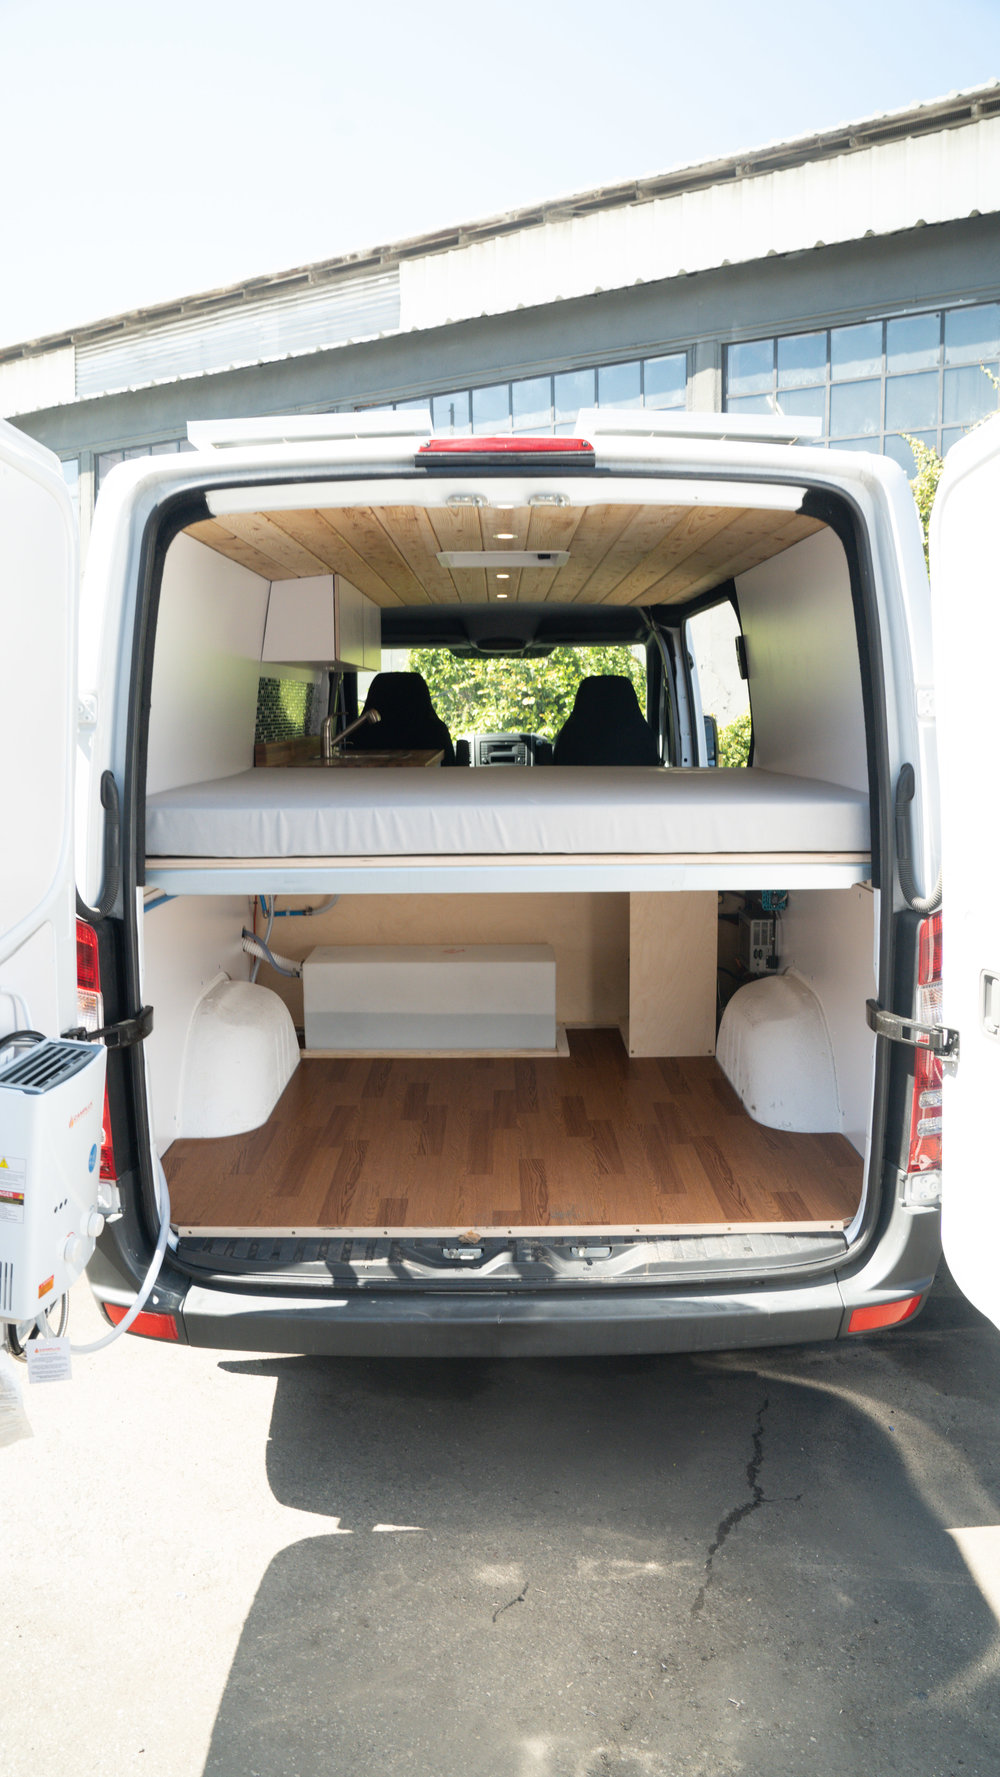 Offering complete van conversions and other conversion services. Conversions & Services based in Los Angeles, California.   SD Campervans Conversions : Camper Van Conversion | Conversion Van | Sprinter Van Conversion | Ford Transit Camper | Ram Promaster Camper Van | Nissan Camper Van | Travel Van | Camper Conversion